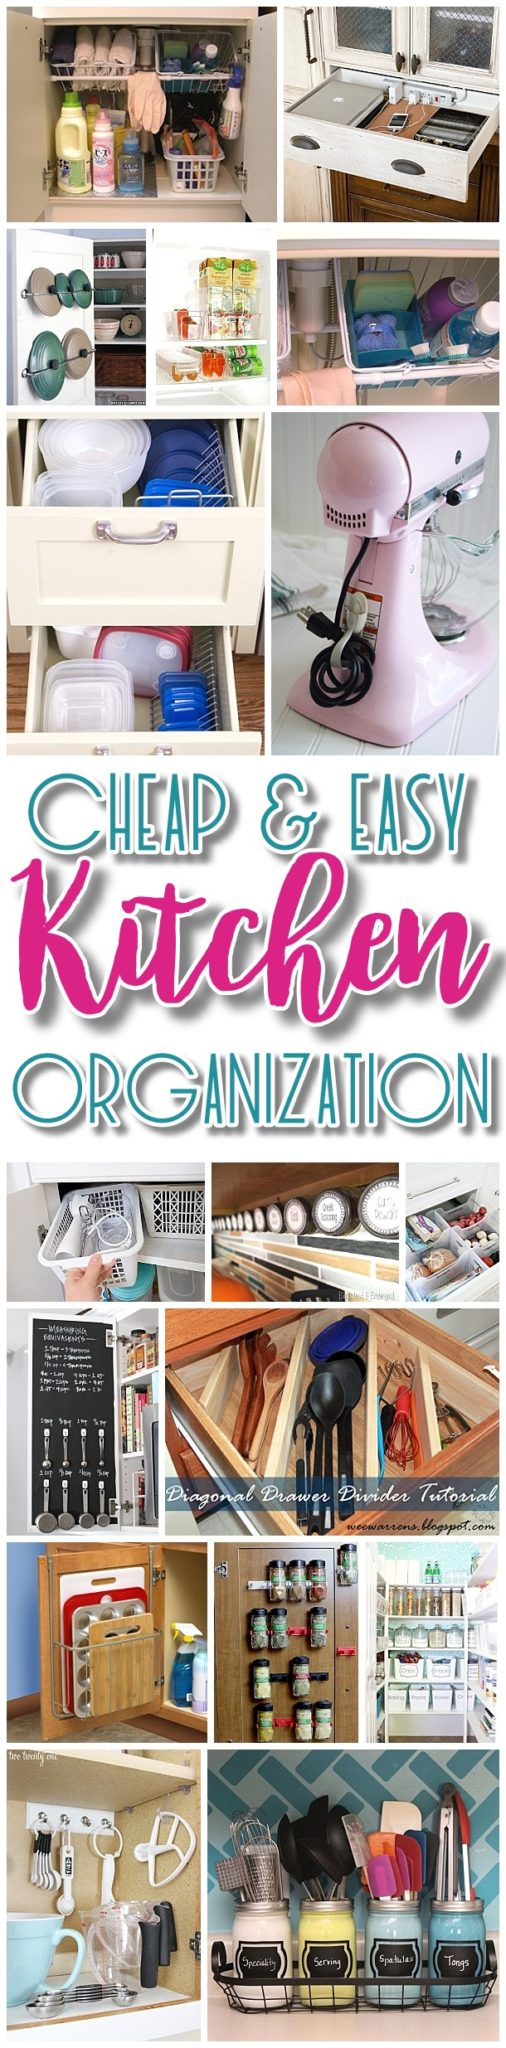 Organizing Your Kitchen Easy budget friendly ways to organize your kitchen quick tips easy and budget friendly ways to organize your kitchen hacks ideas space saving workwithnaturefo